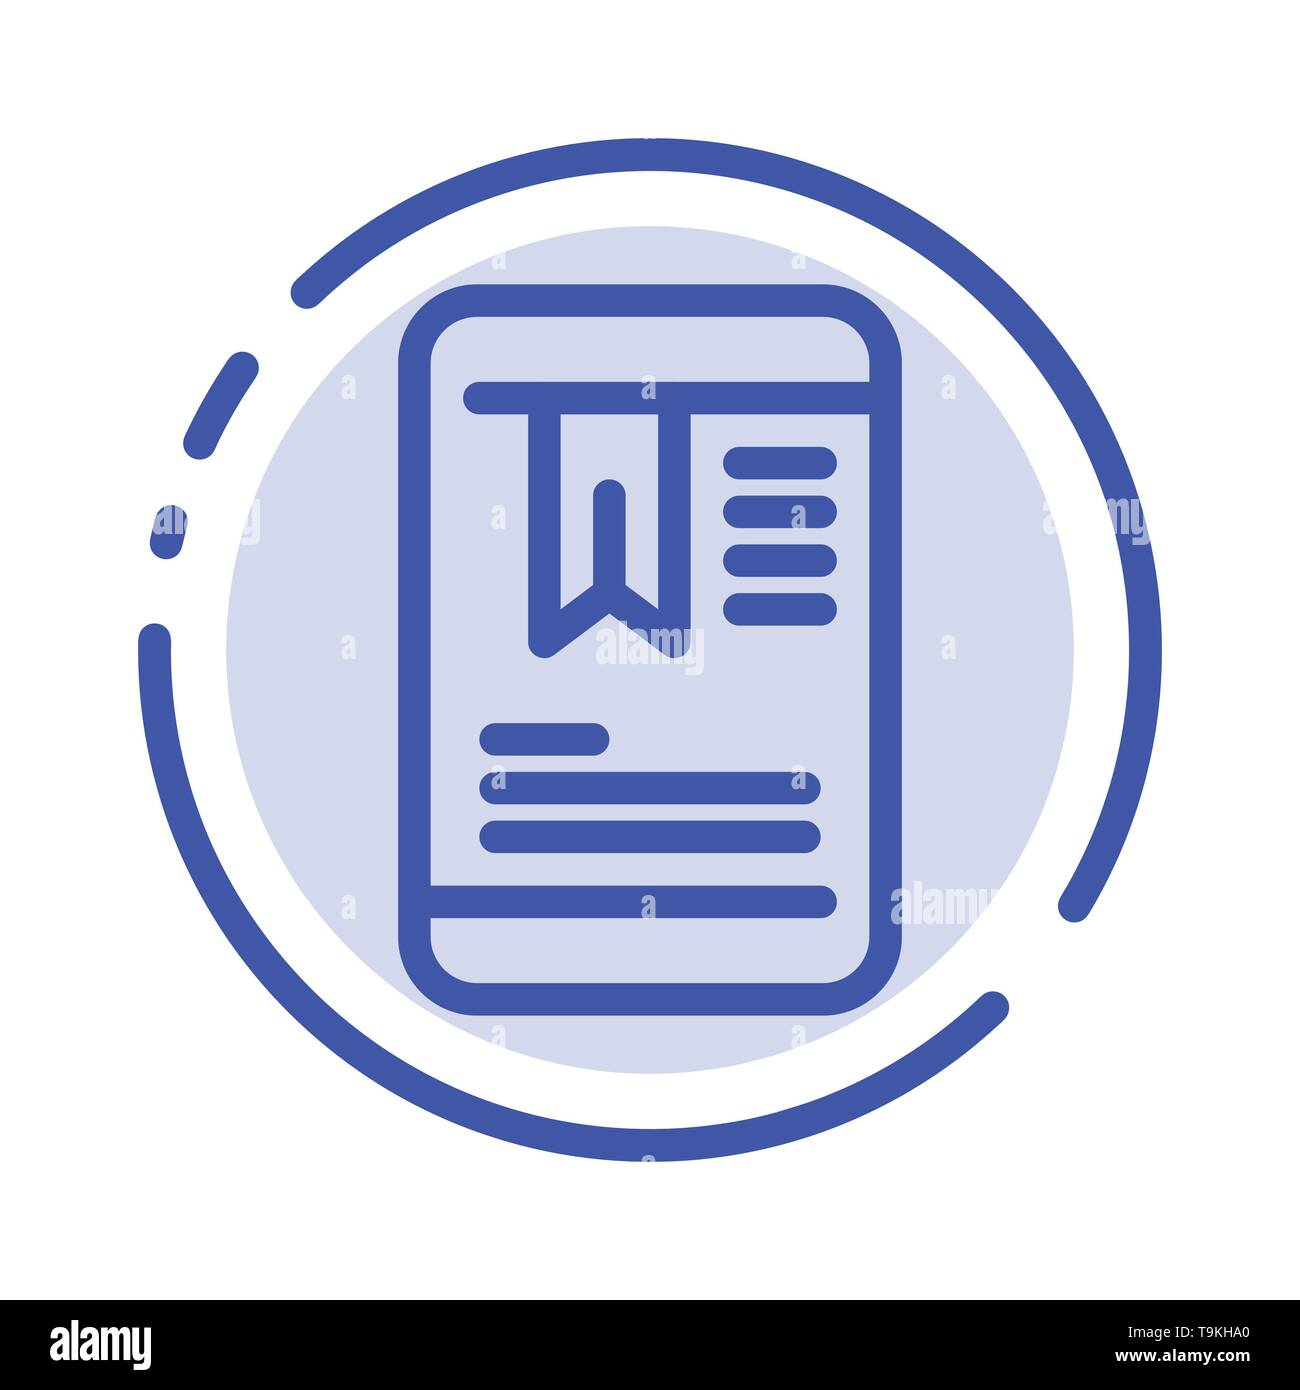 Mobile, Tag, OnEducation Blue Dotted Line Line Icon - Stock Image